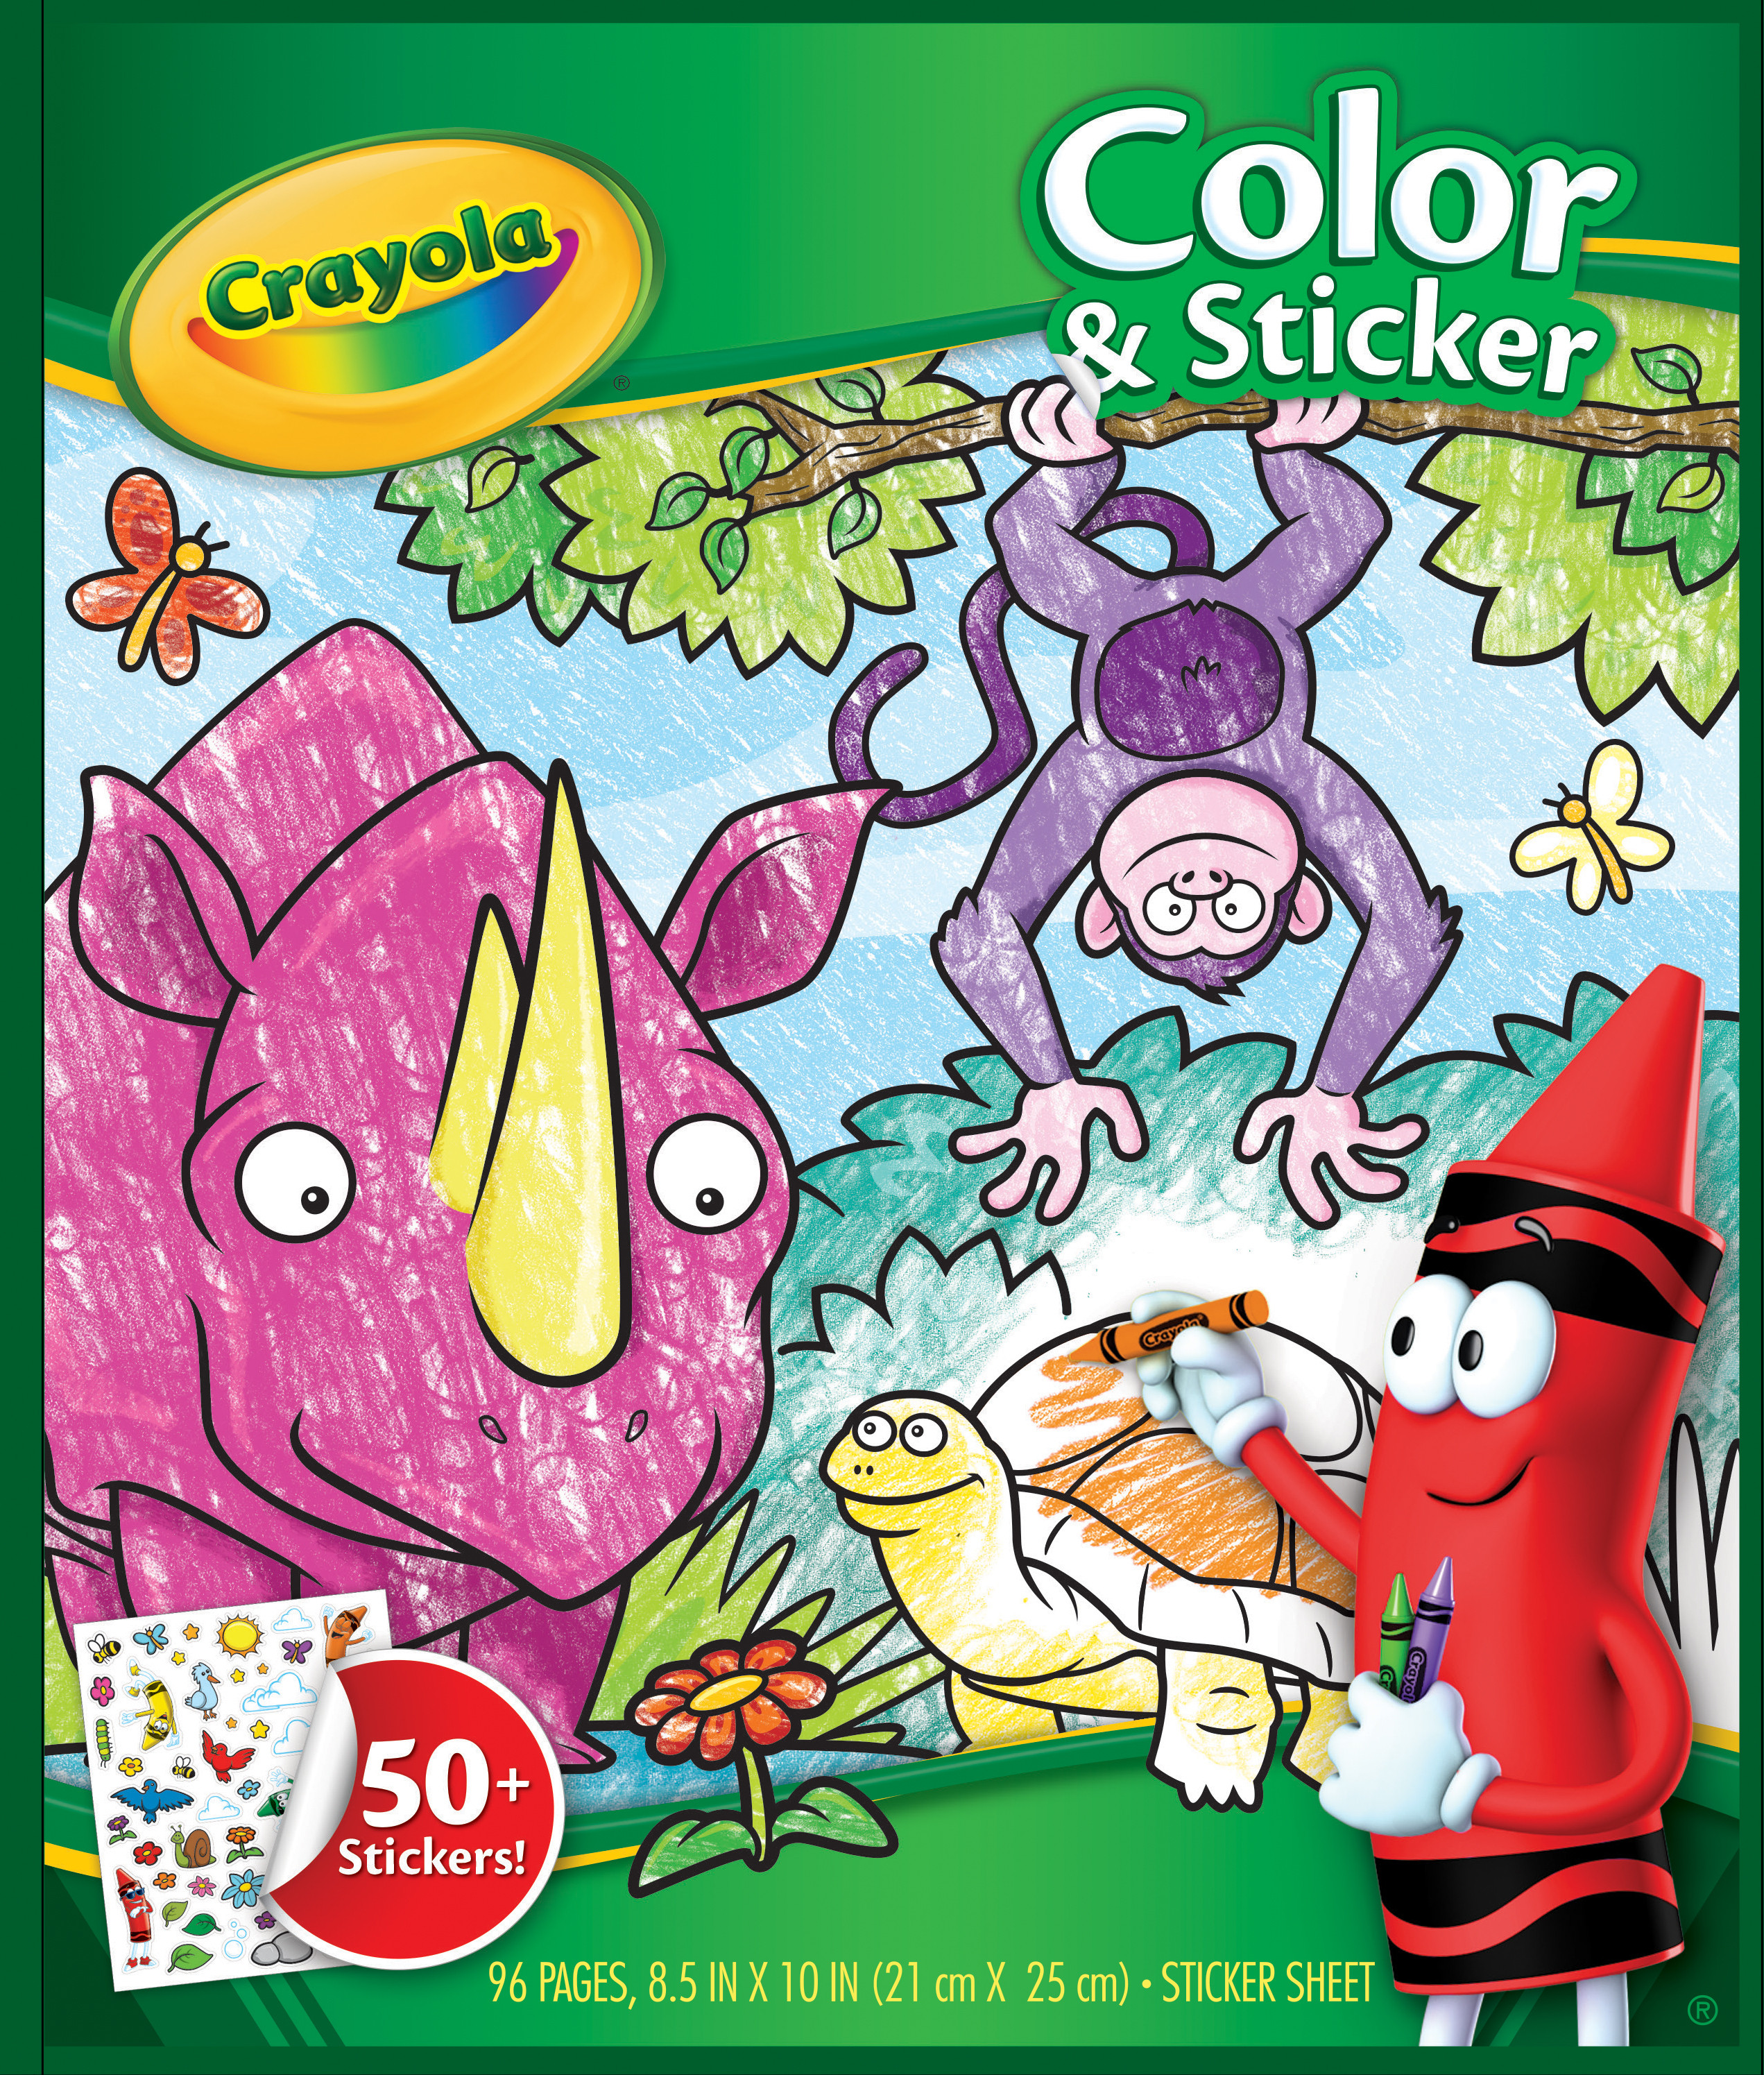 Crayola Jungle Animal Coloring Book With 50+ Stickers, Gift For Kids, 96  Pages - Walmart.com - Walmart.com